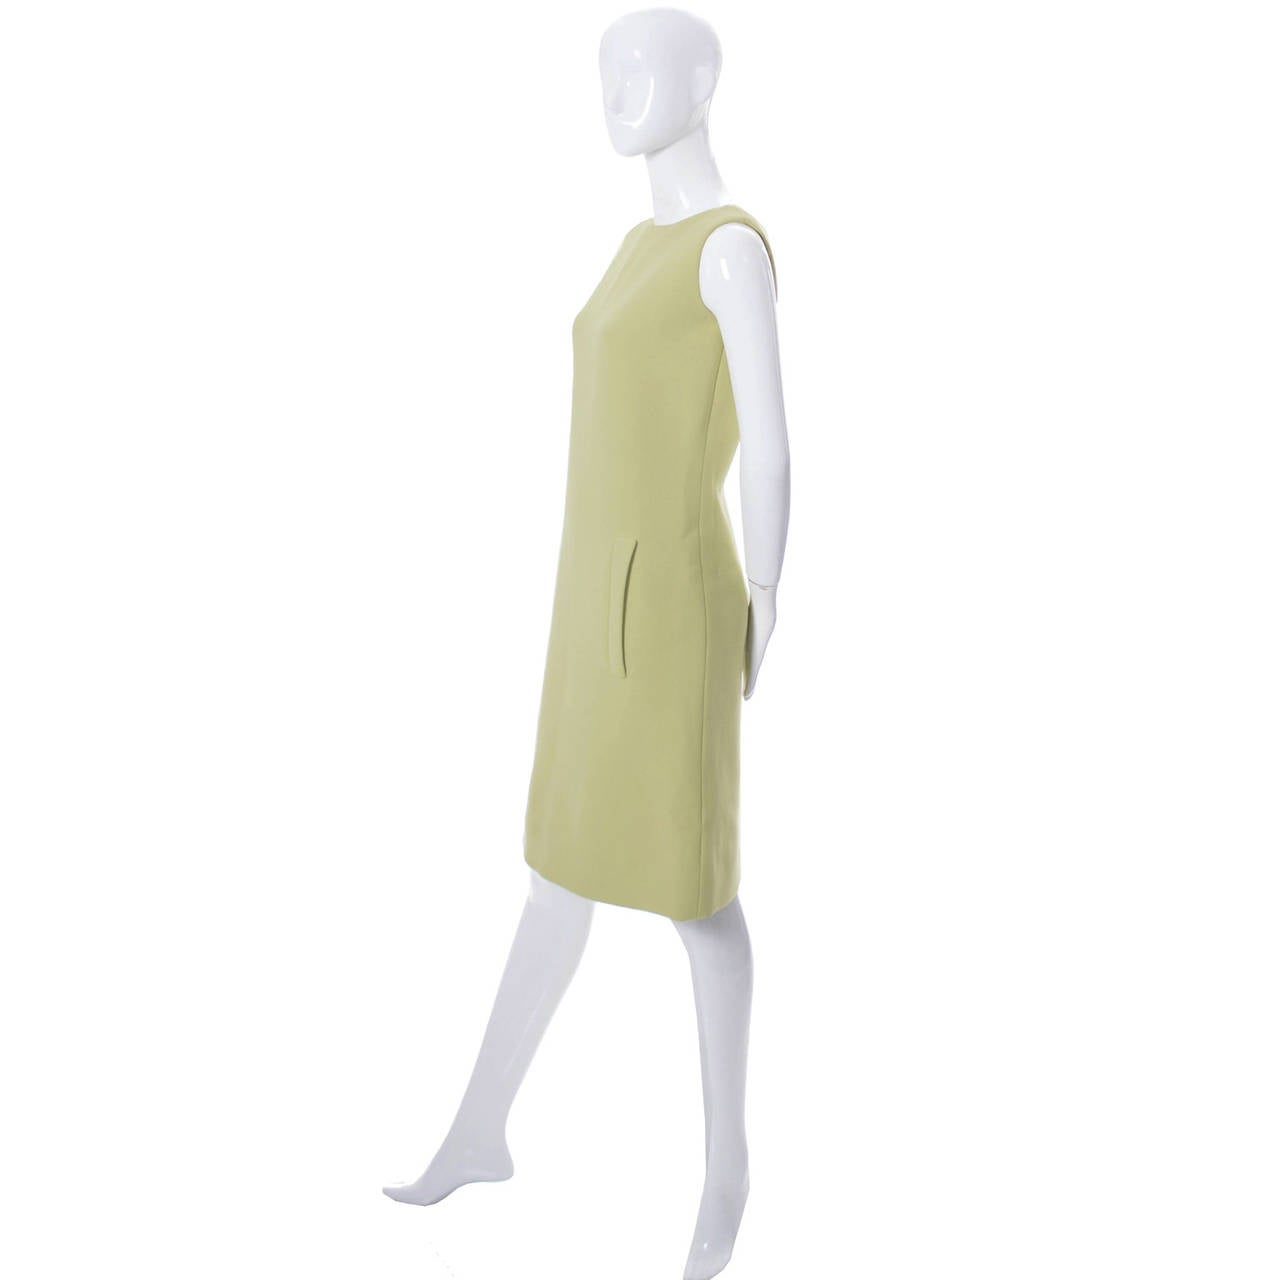 This is a vintage 1960's timeless sleeveless green shift dress from designer Norman Norell. This fully lined structured wool dress has 2 pockets in the front and 4 black buttons down the back. This dress was originally purchased in the late 1960's